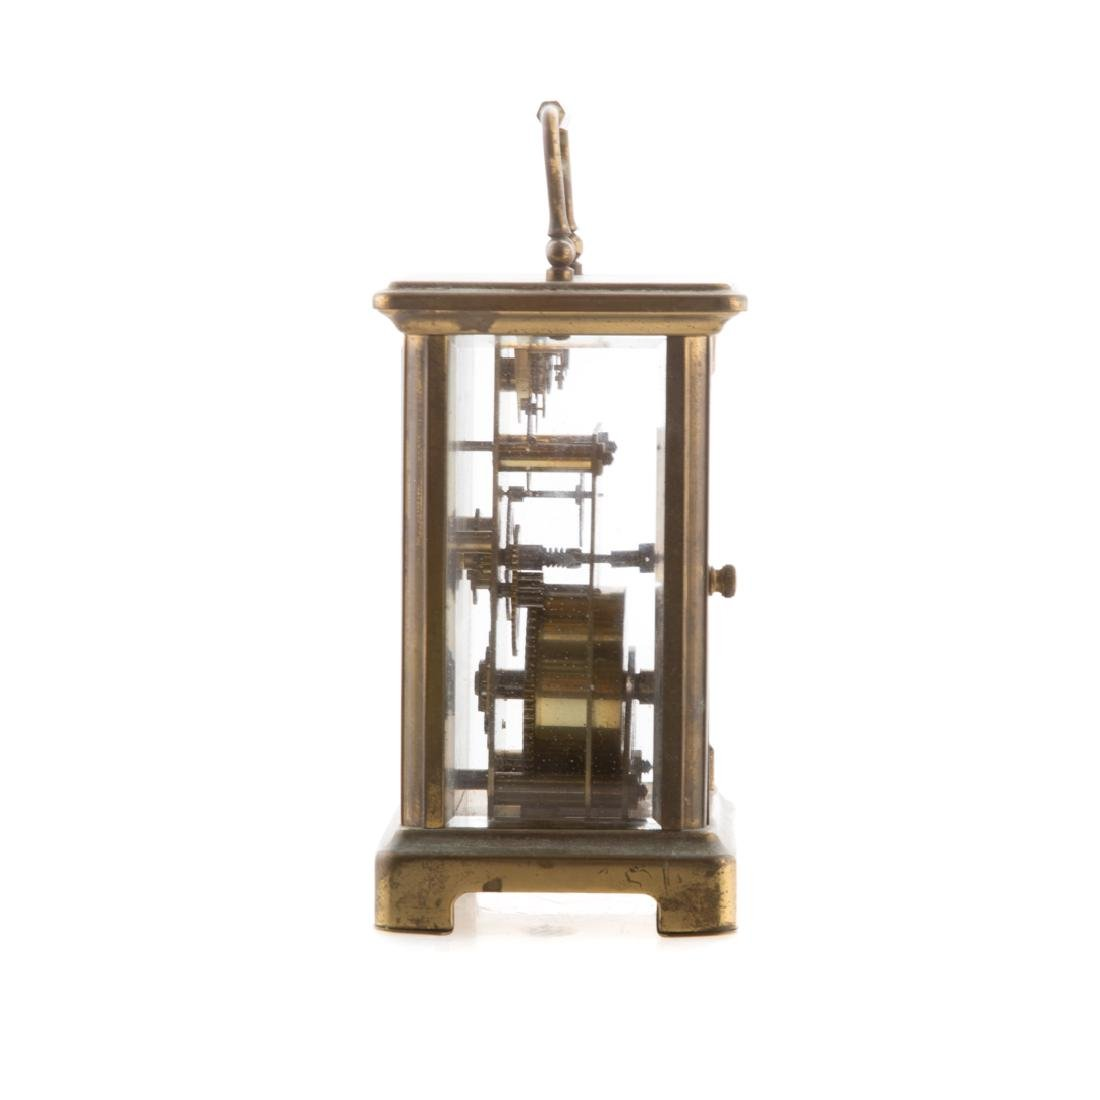 French brass and glass carriage clock - 2